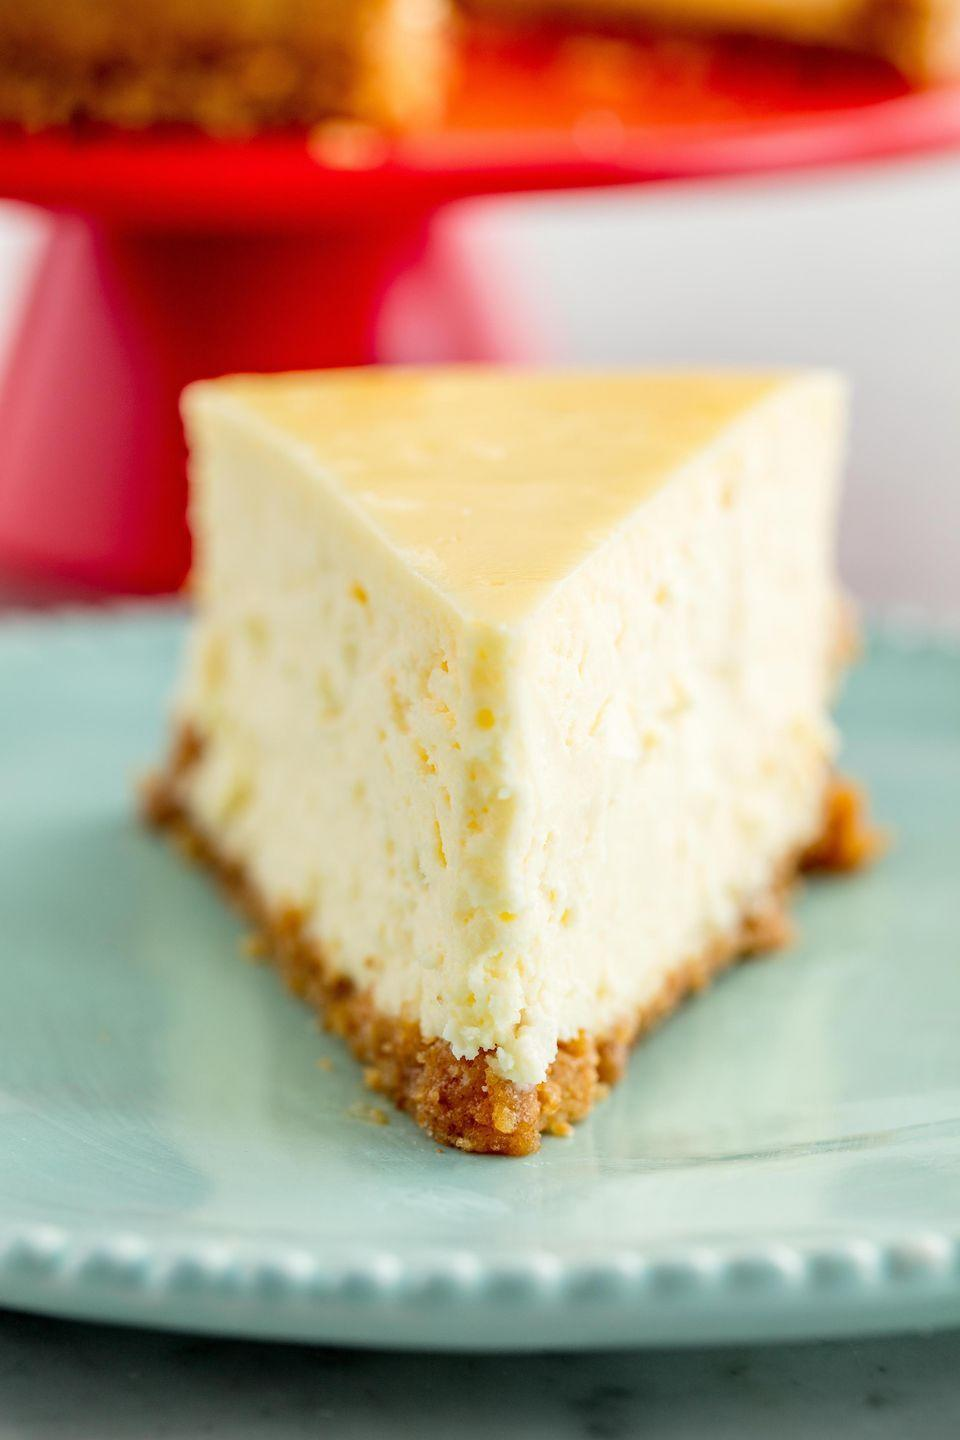 """<p>This perfectly simple cheesecake will wow a crowd.</p><p>Get the recipe from <a href=""""https://www.delish.com/cooking/recipe-ideas/recipes/a58084/easy-classic-cheesecake-recipe/"""" rel=""""nofollow noopener"""" target=""""_blank"""" data-ylk=""""slk:Delish"""" class=""""link rapid-noclick-resp"""">Delish</a>.</p>"""